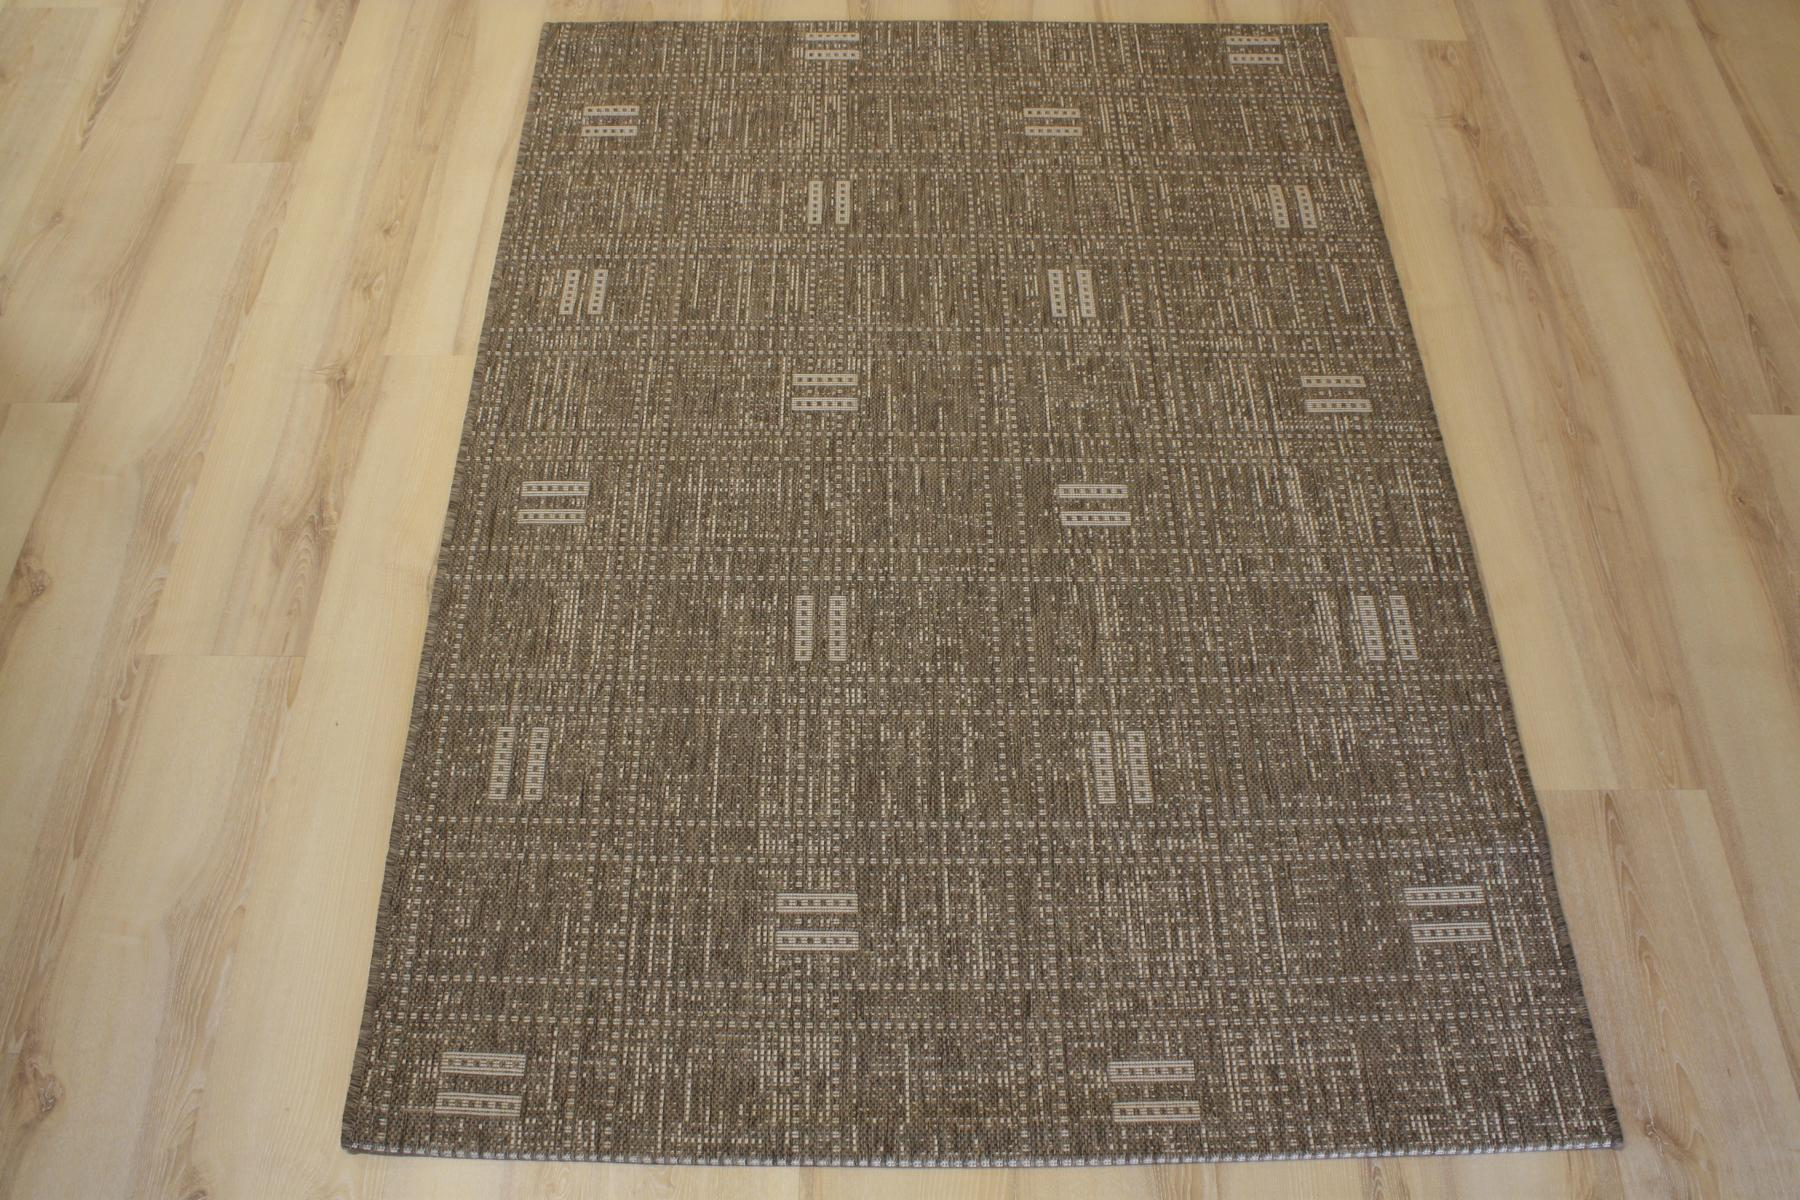 Astra Torrent Rug 164 Beam 084 Taupe 160x230 Cm Ebay